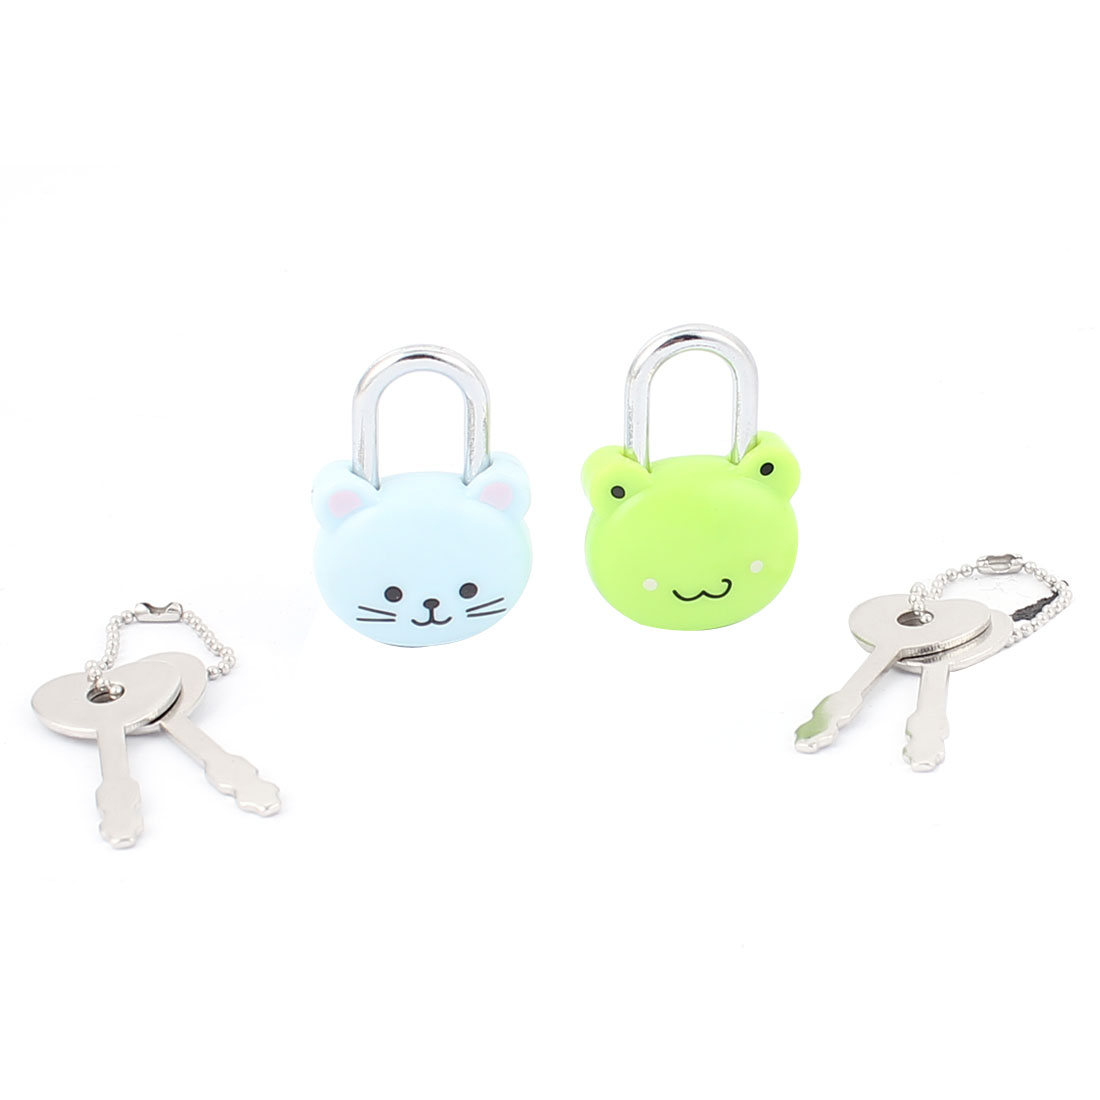 Cabinet Jewlery Drawer Suitcase Cat Frog Head Shape Security Lock Padlock 2Pcs